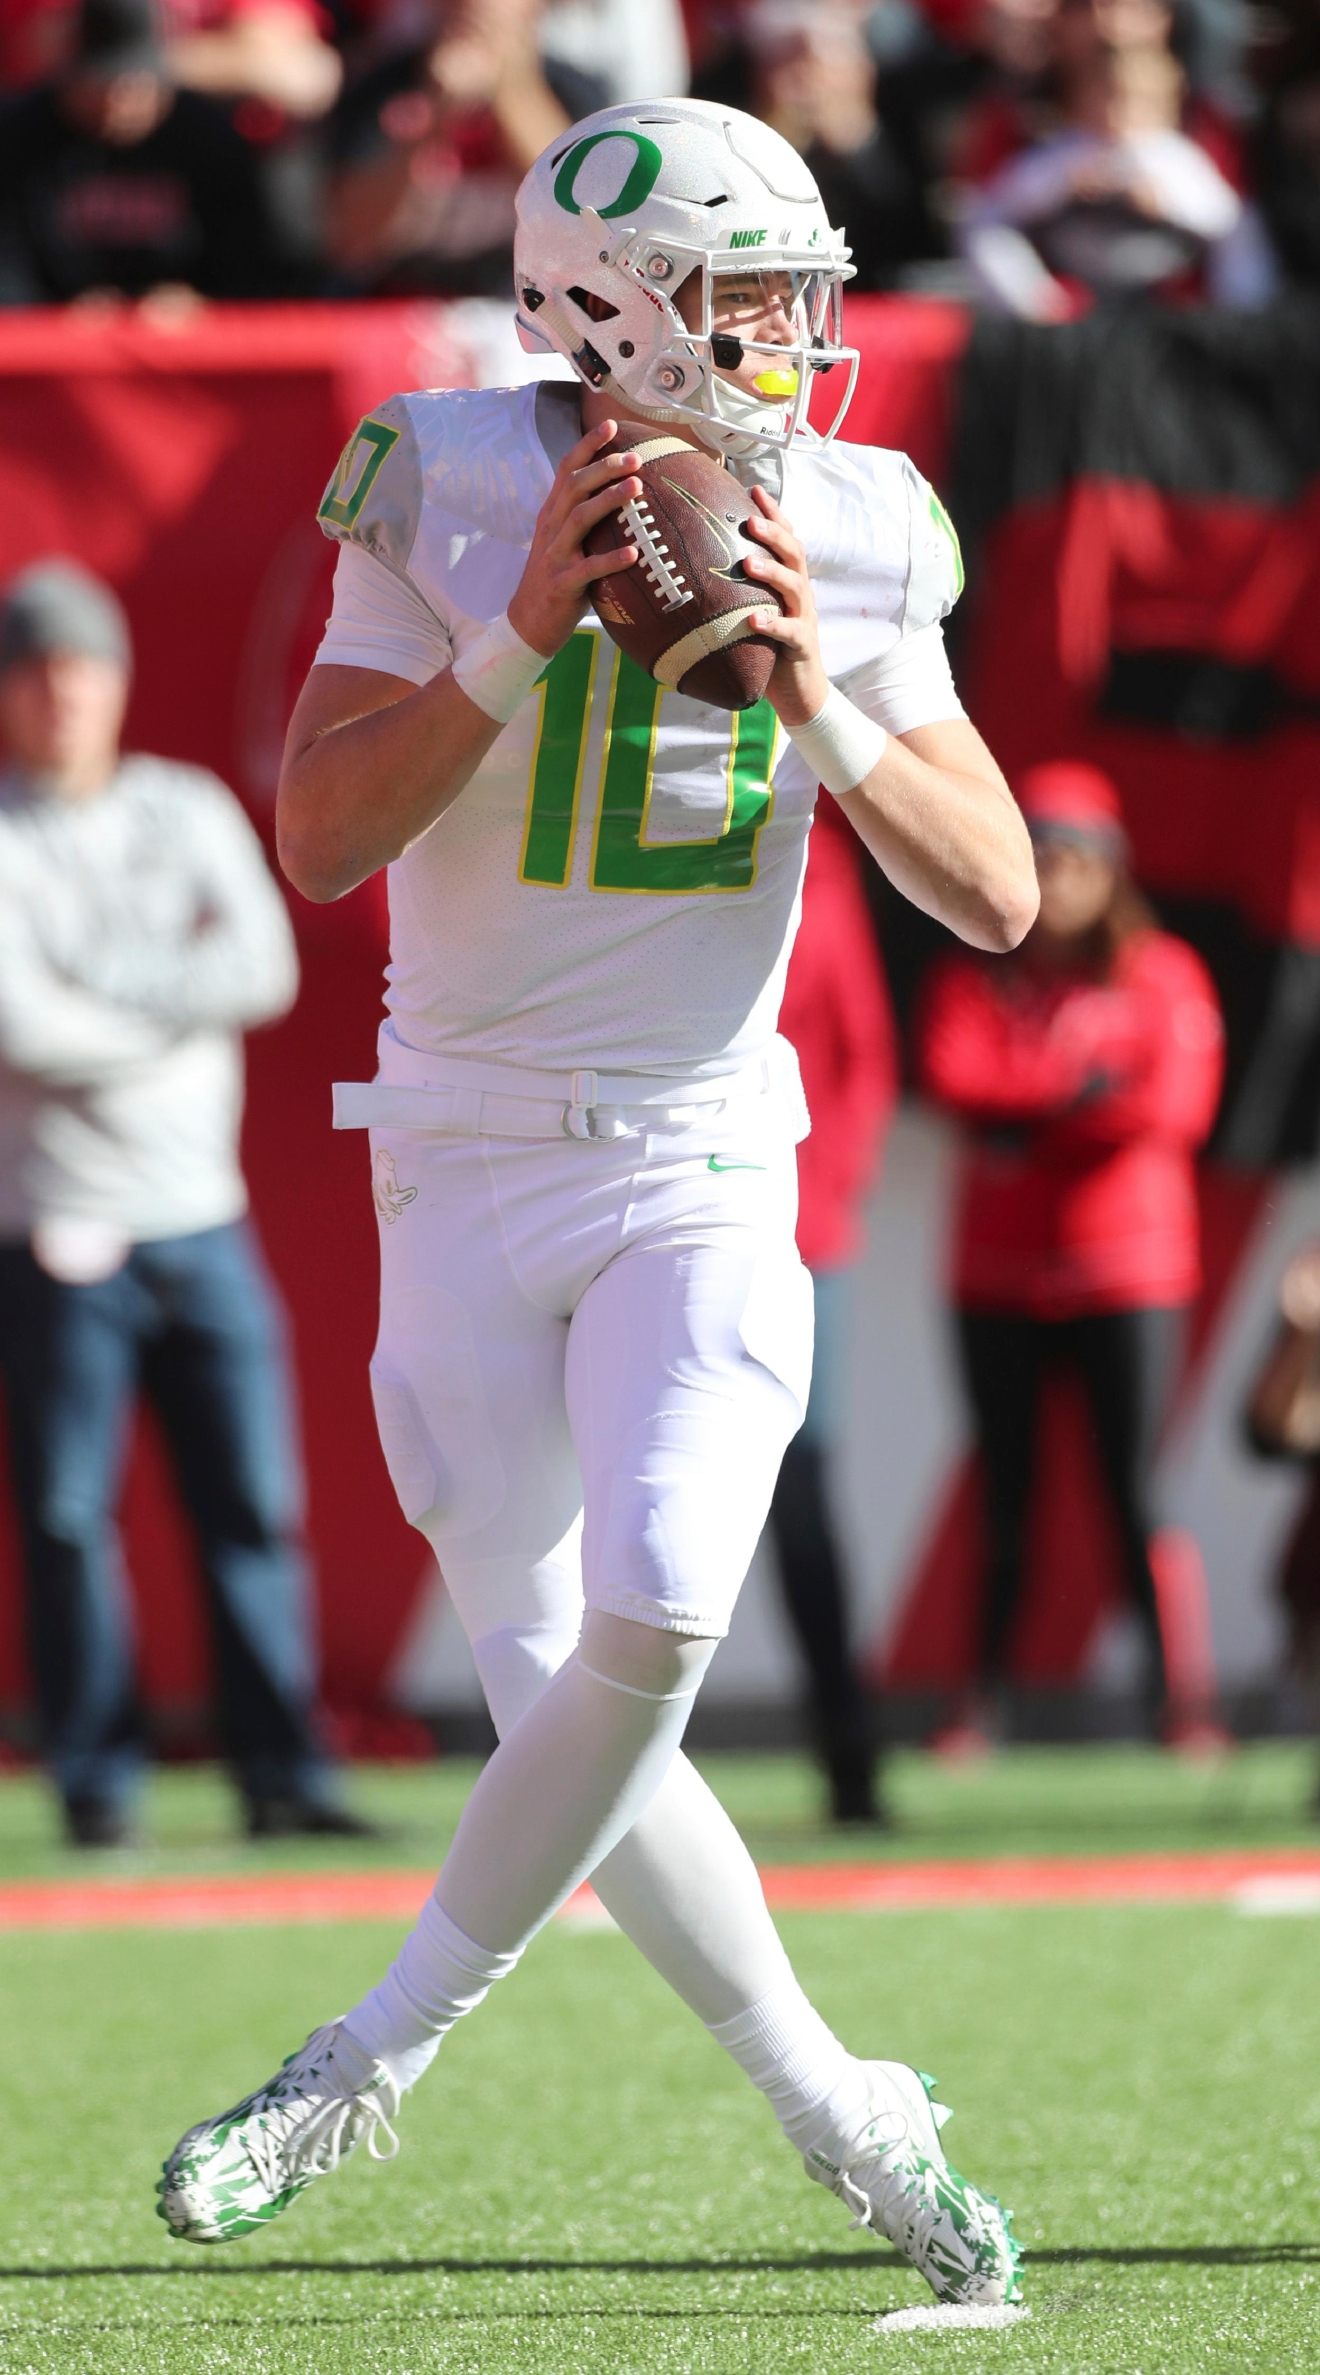 Oregon quarterback Justin Herbert (10), looks to pass the ball in the first half during an NCAA college football game against Utah, Saturday, Nov. 19, 2016, in Salt Lake City. (AP Photo/George Frey)